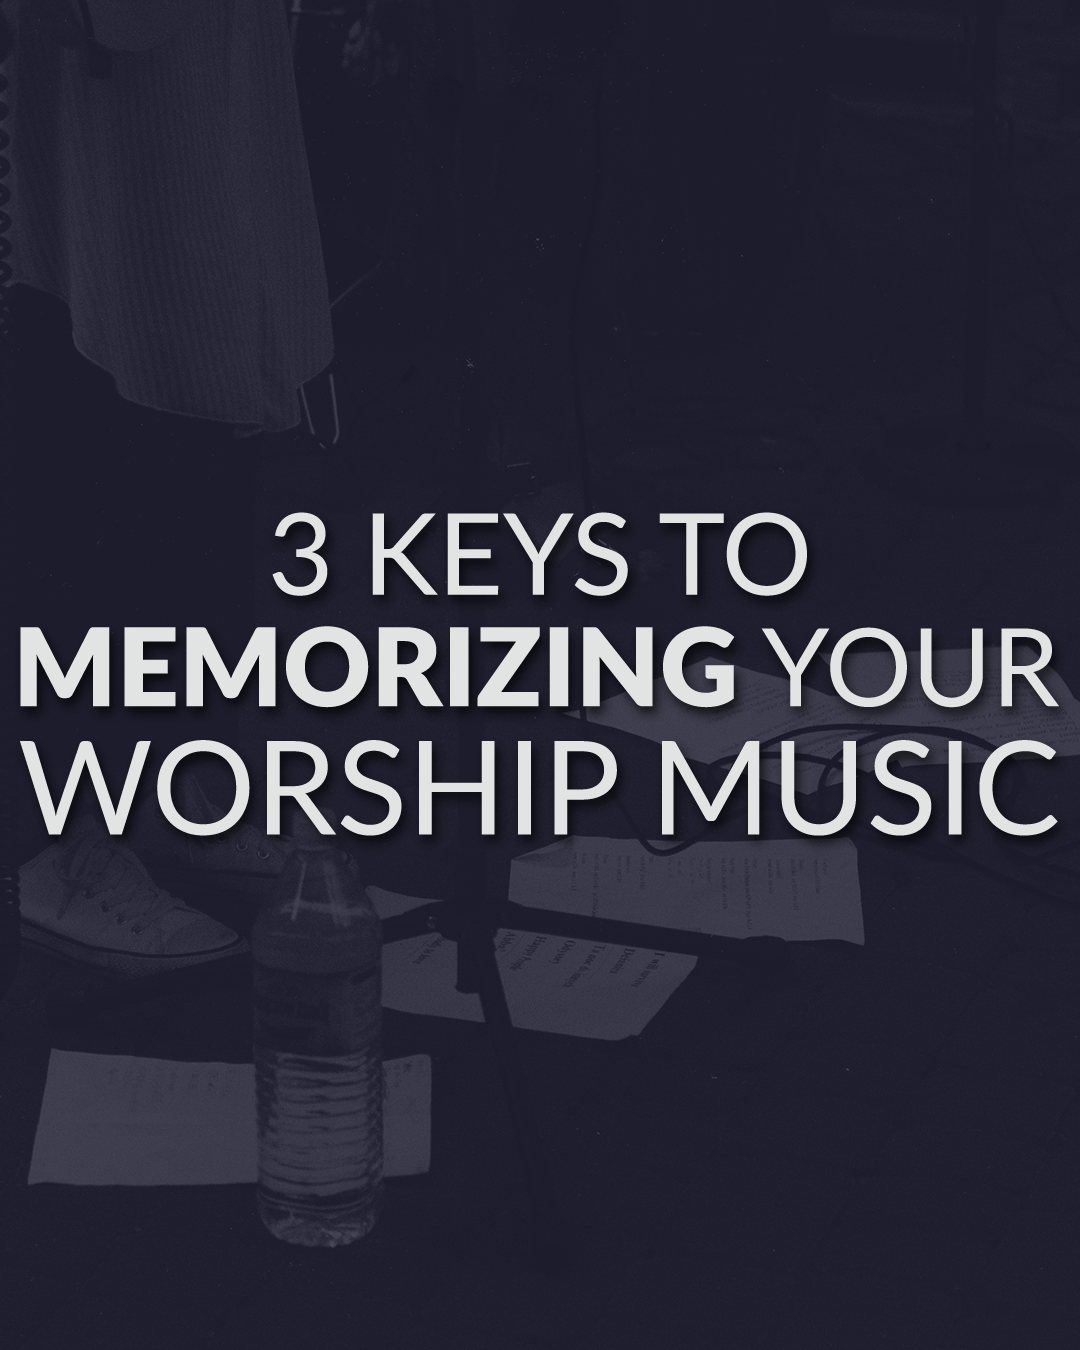 3 Keys To Memorizing Your Worship Music